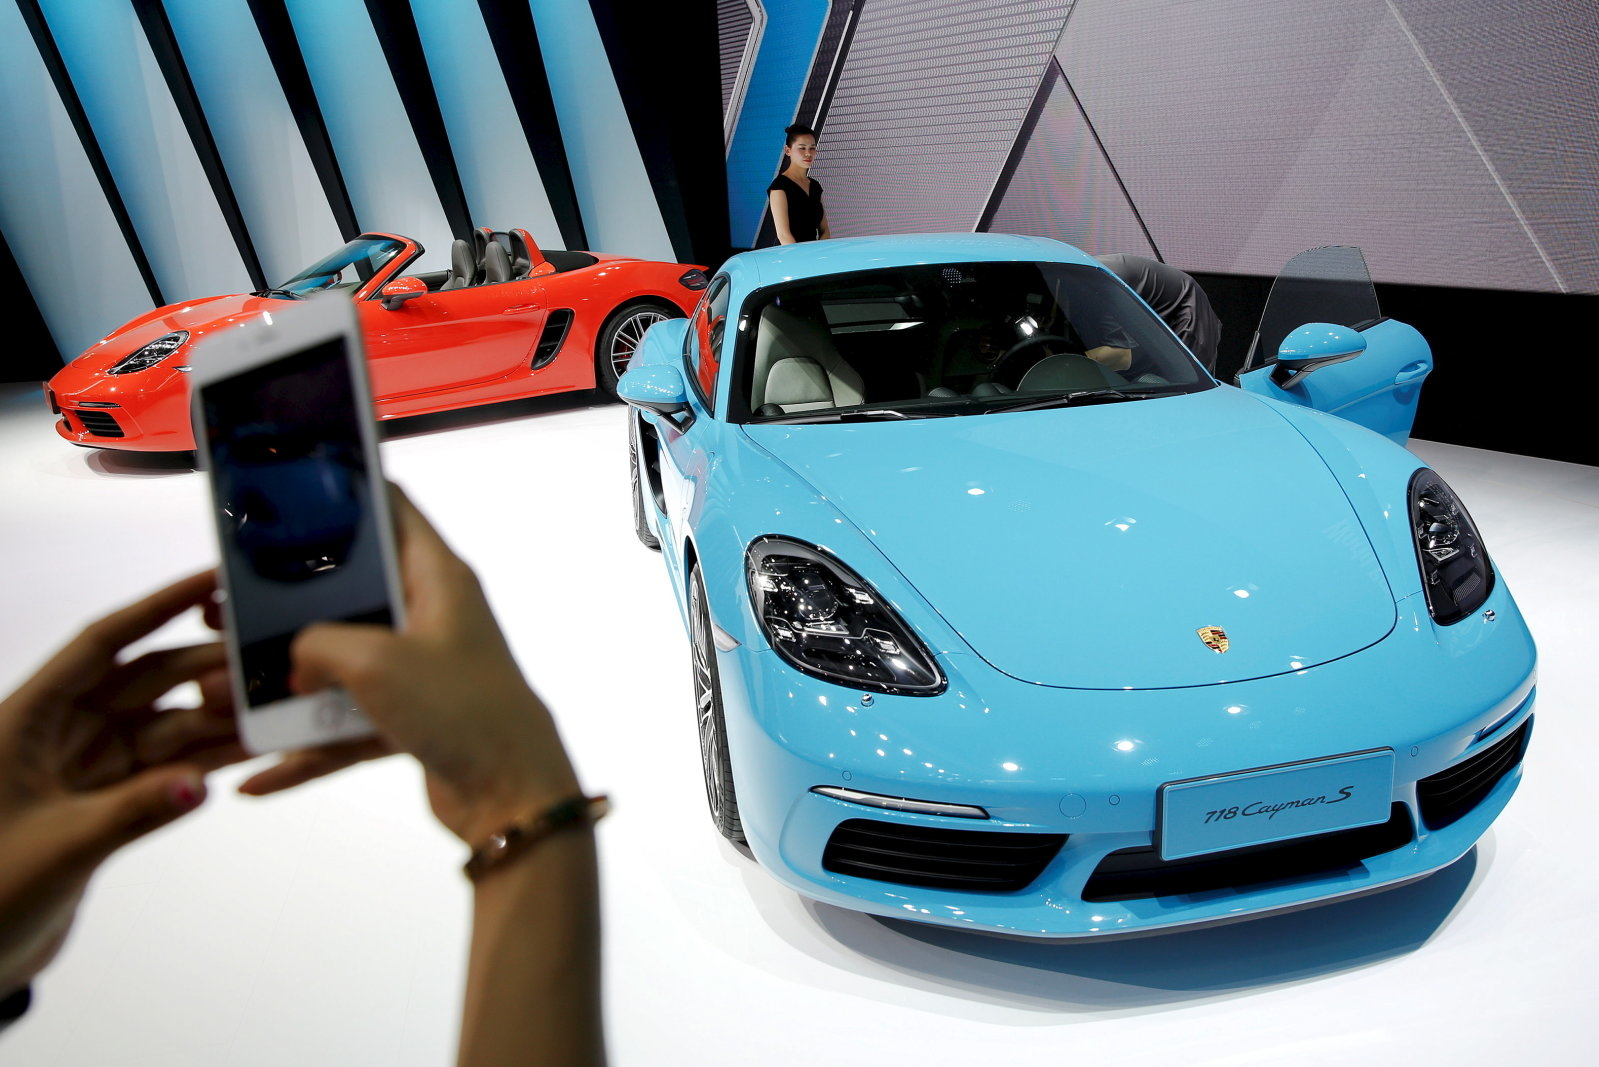 Porsche's $2,000 Passport subscription service is the Netflix of sports cars